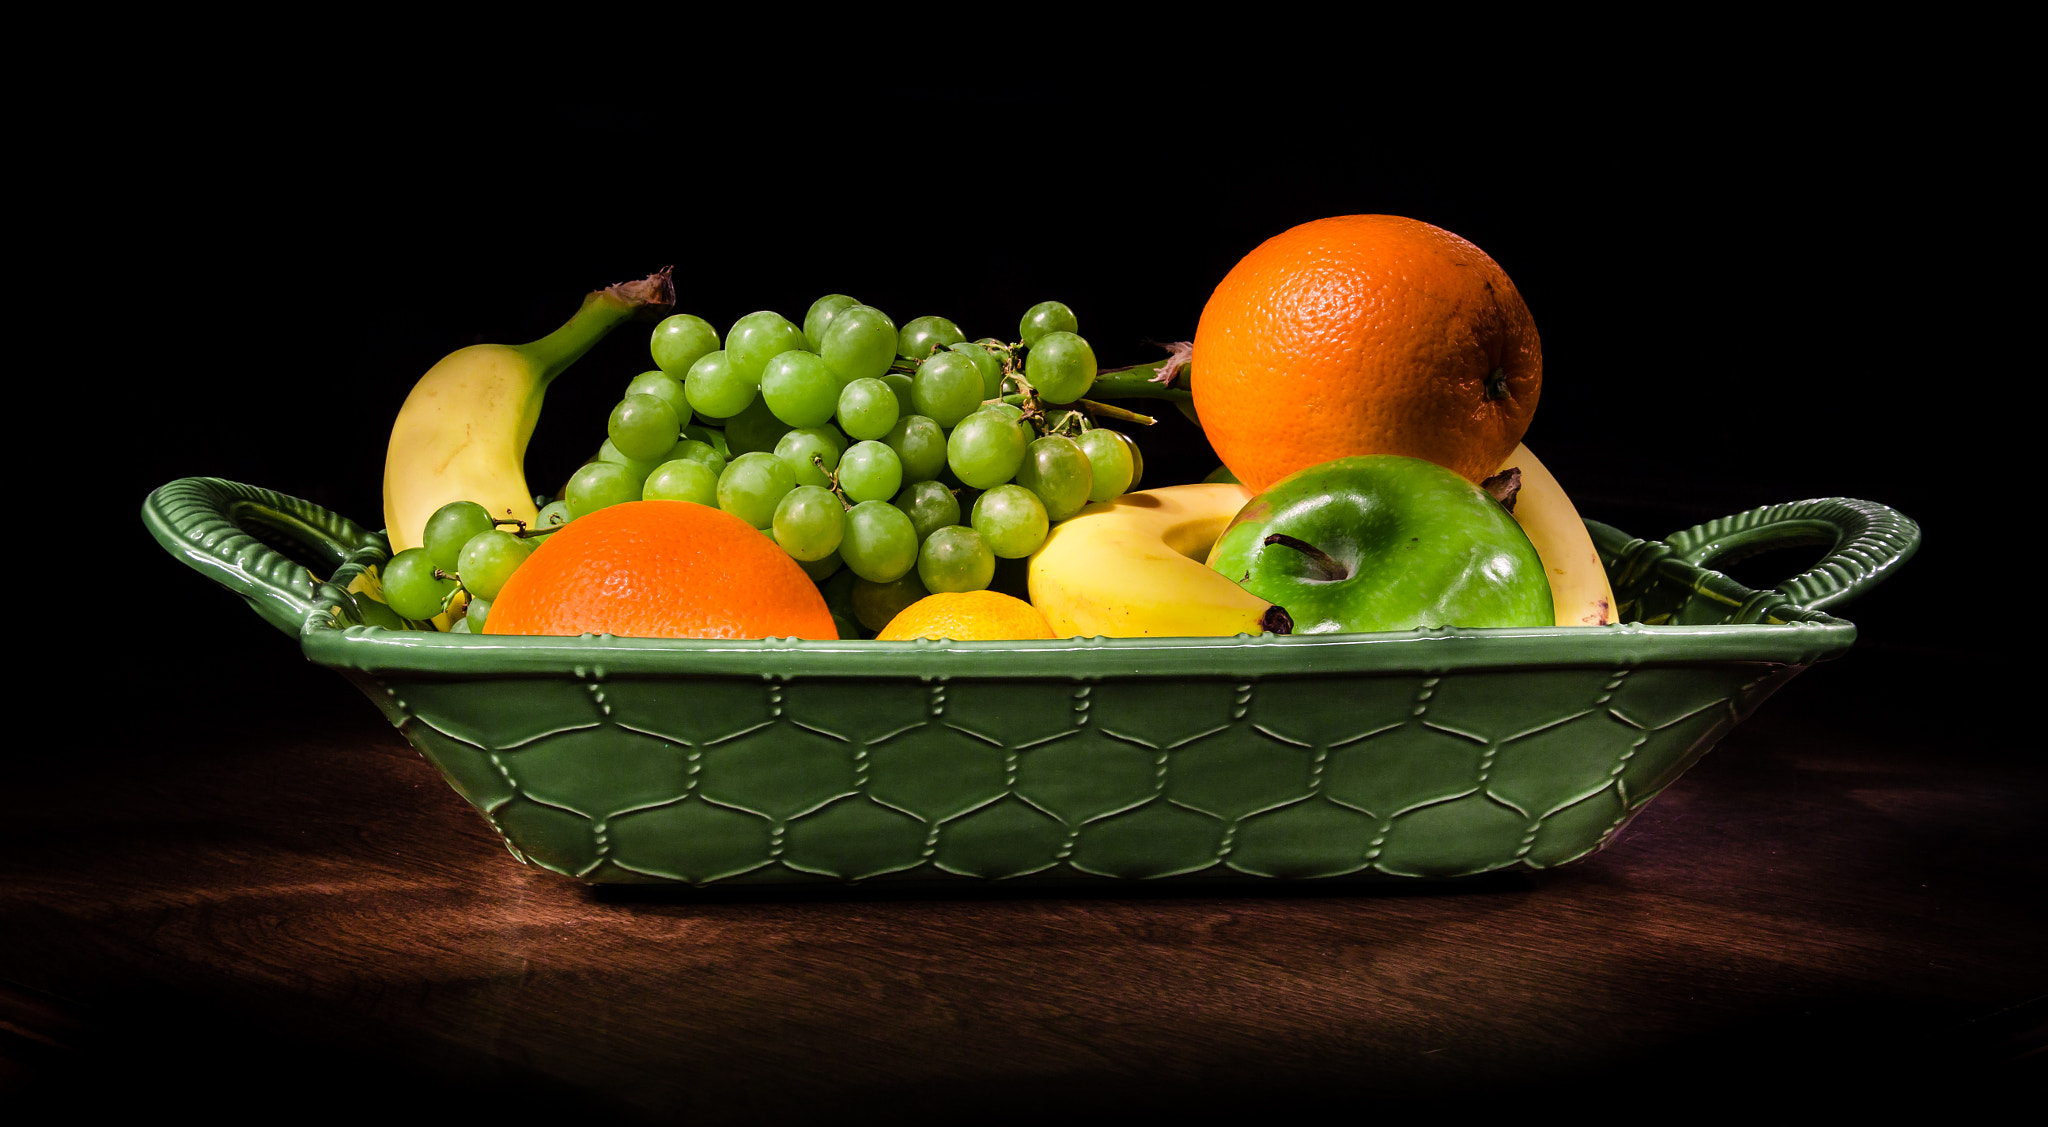 Photograph Fruit Basket by Jeremiah Kuehne on 500px